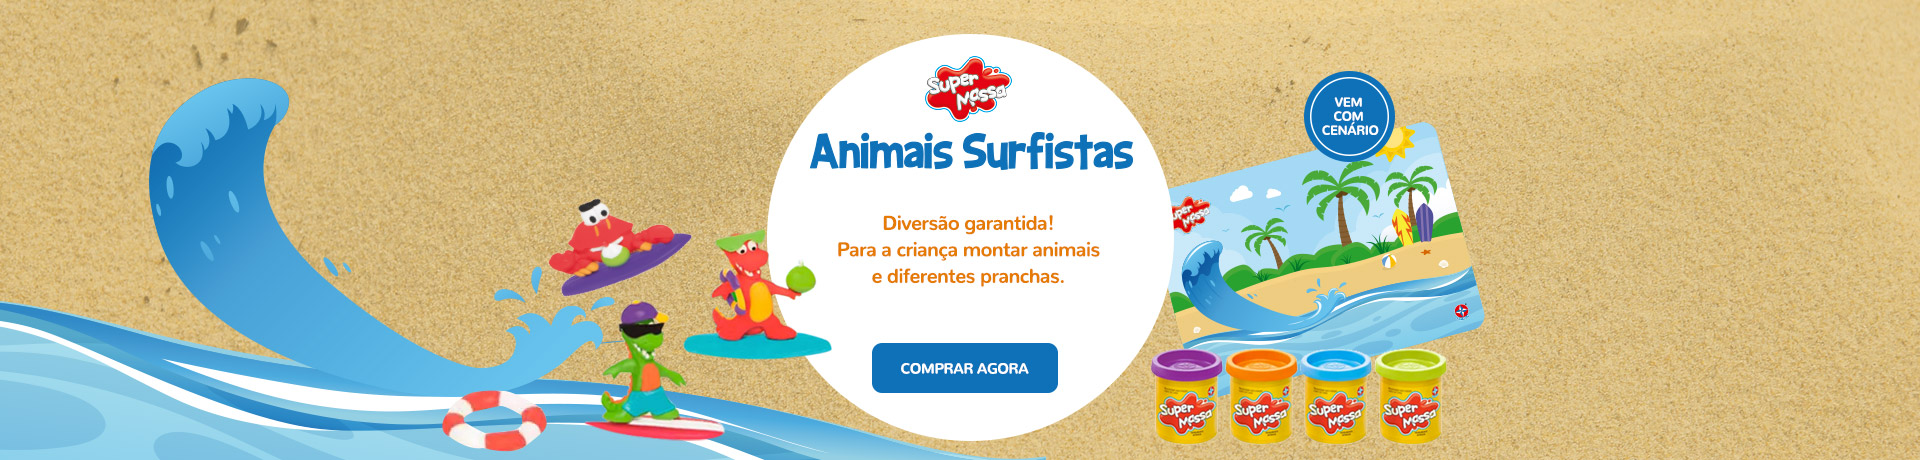 Super Massa Animais Surfistas